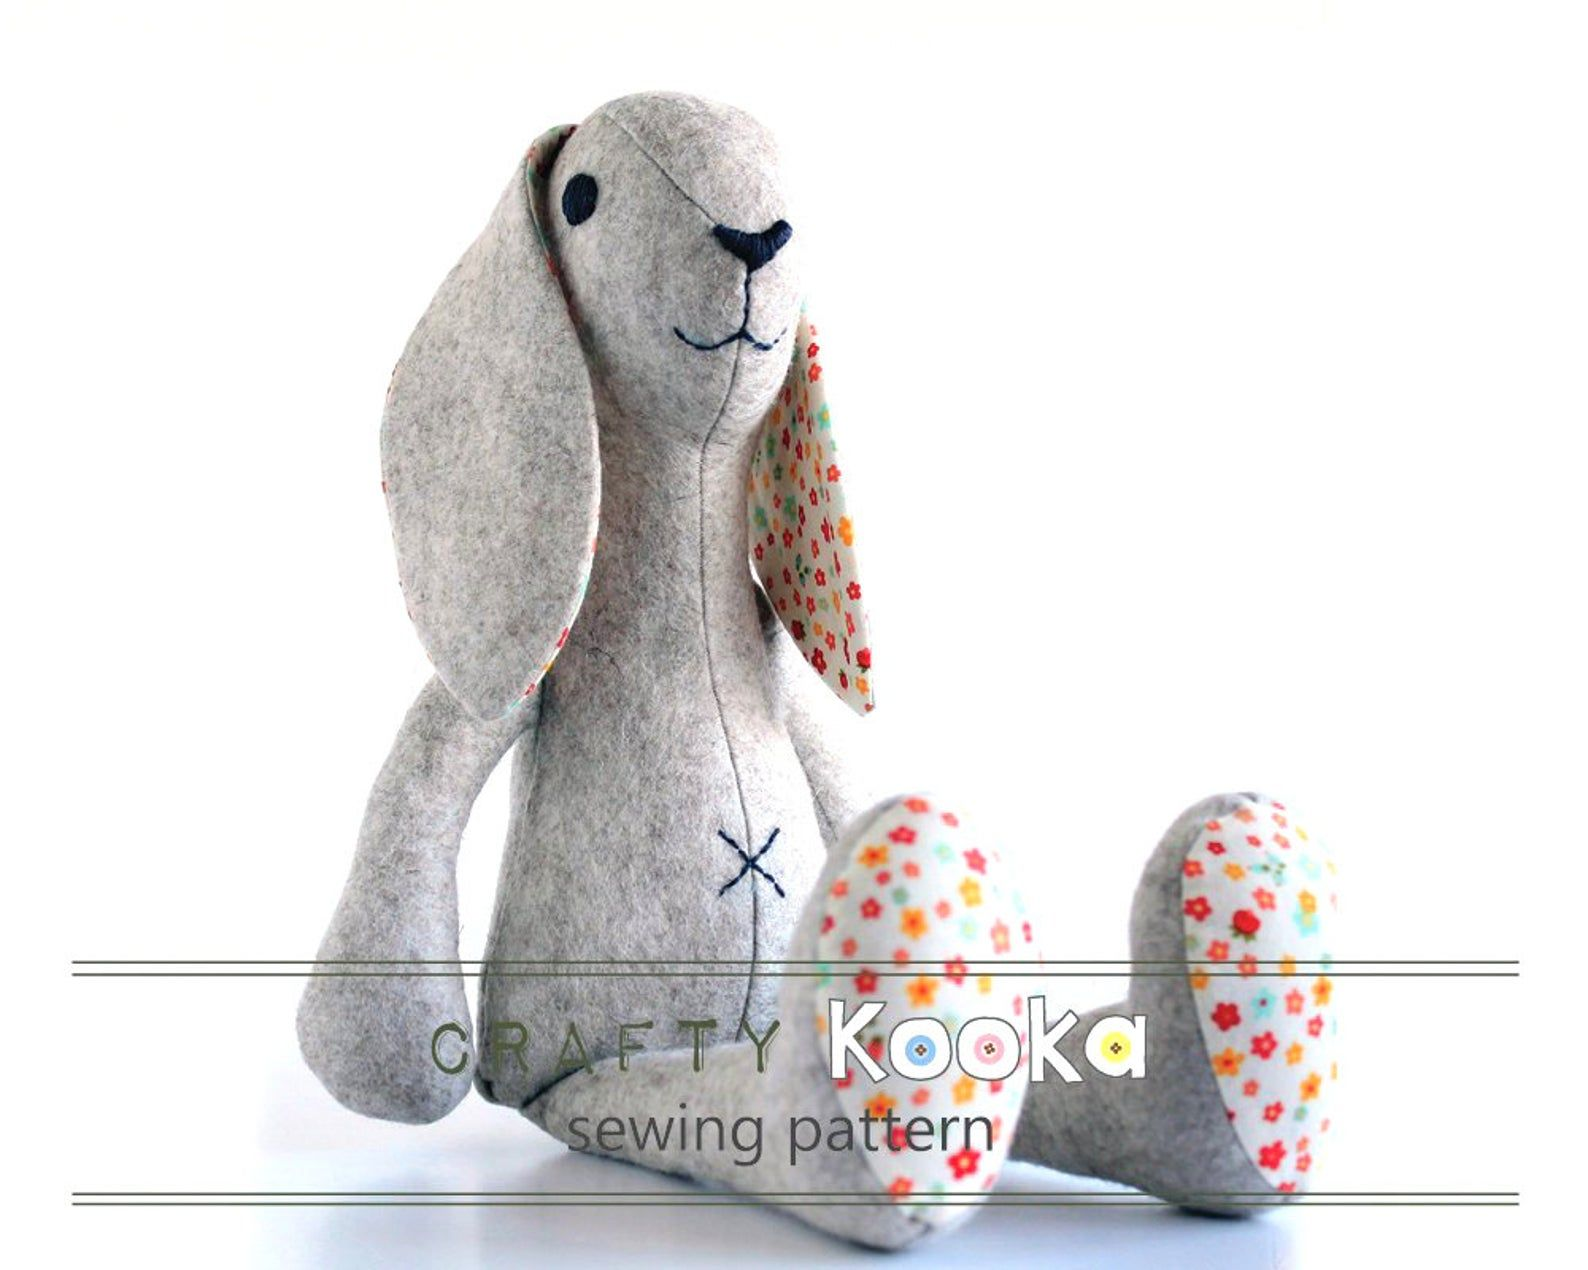 Bunny plush sewing pattern, sewing tutorial, toy sewing pattern  - instant download pdf pattern - sewing projects #bunnyplush